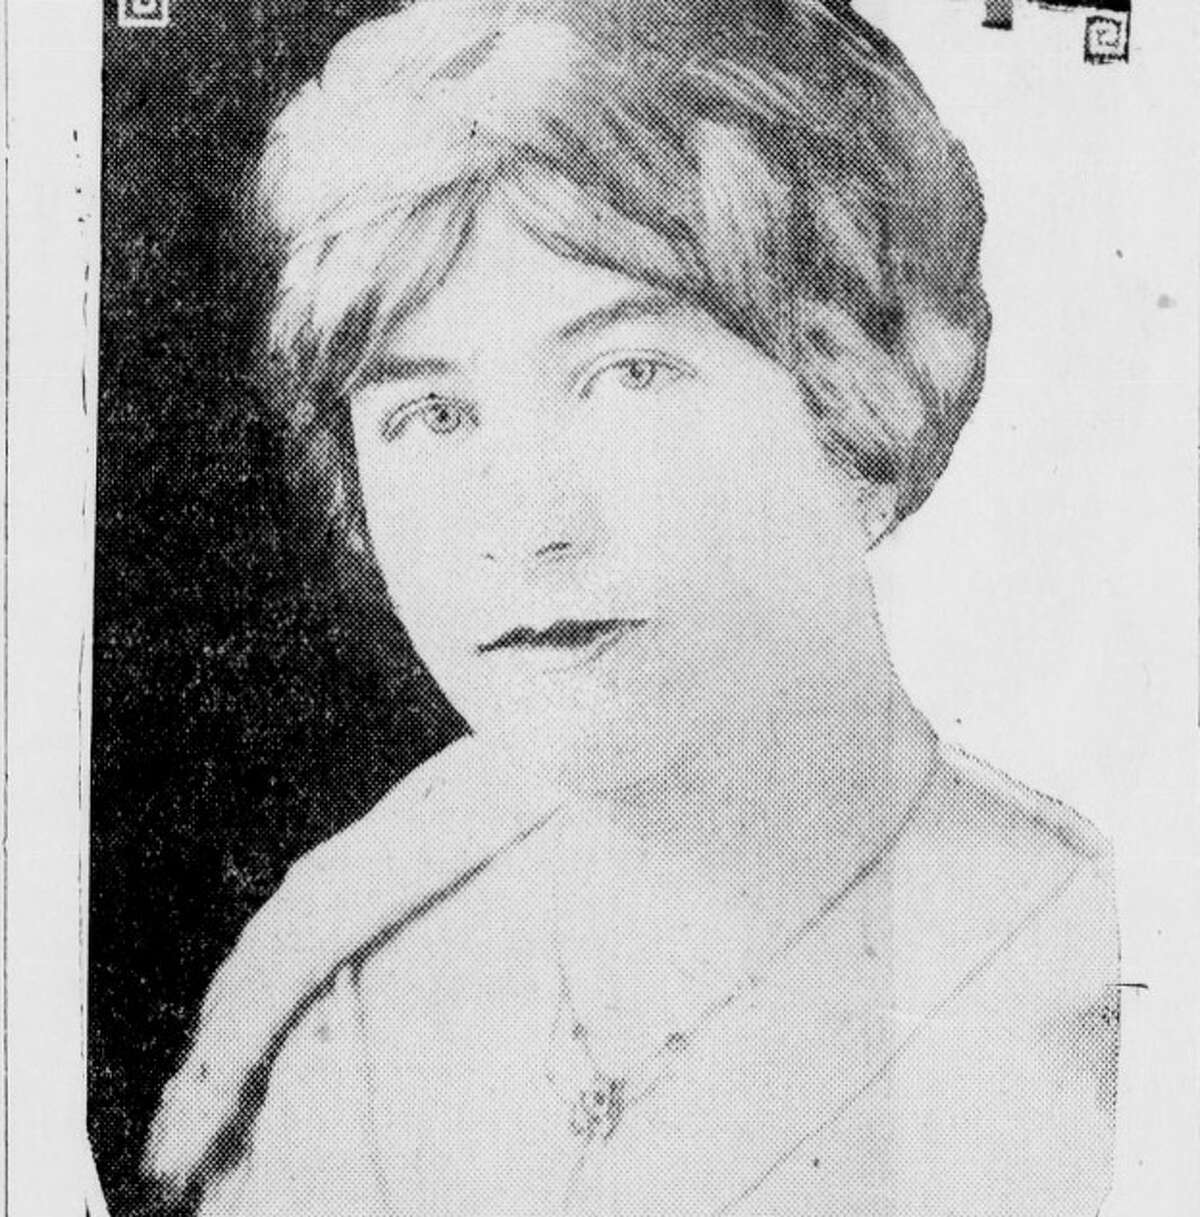 Bessie Ferguson, the 34-year-old Oakland nurse who was found dismembered along the East Bay shoreline in 1925.